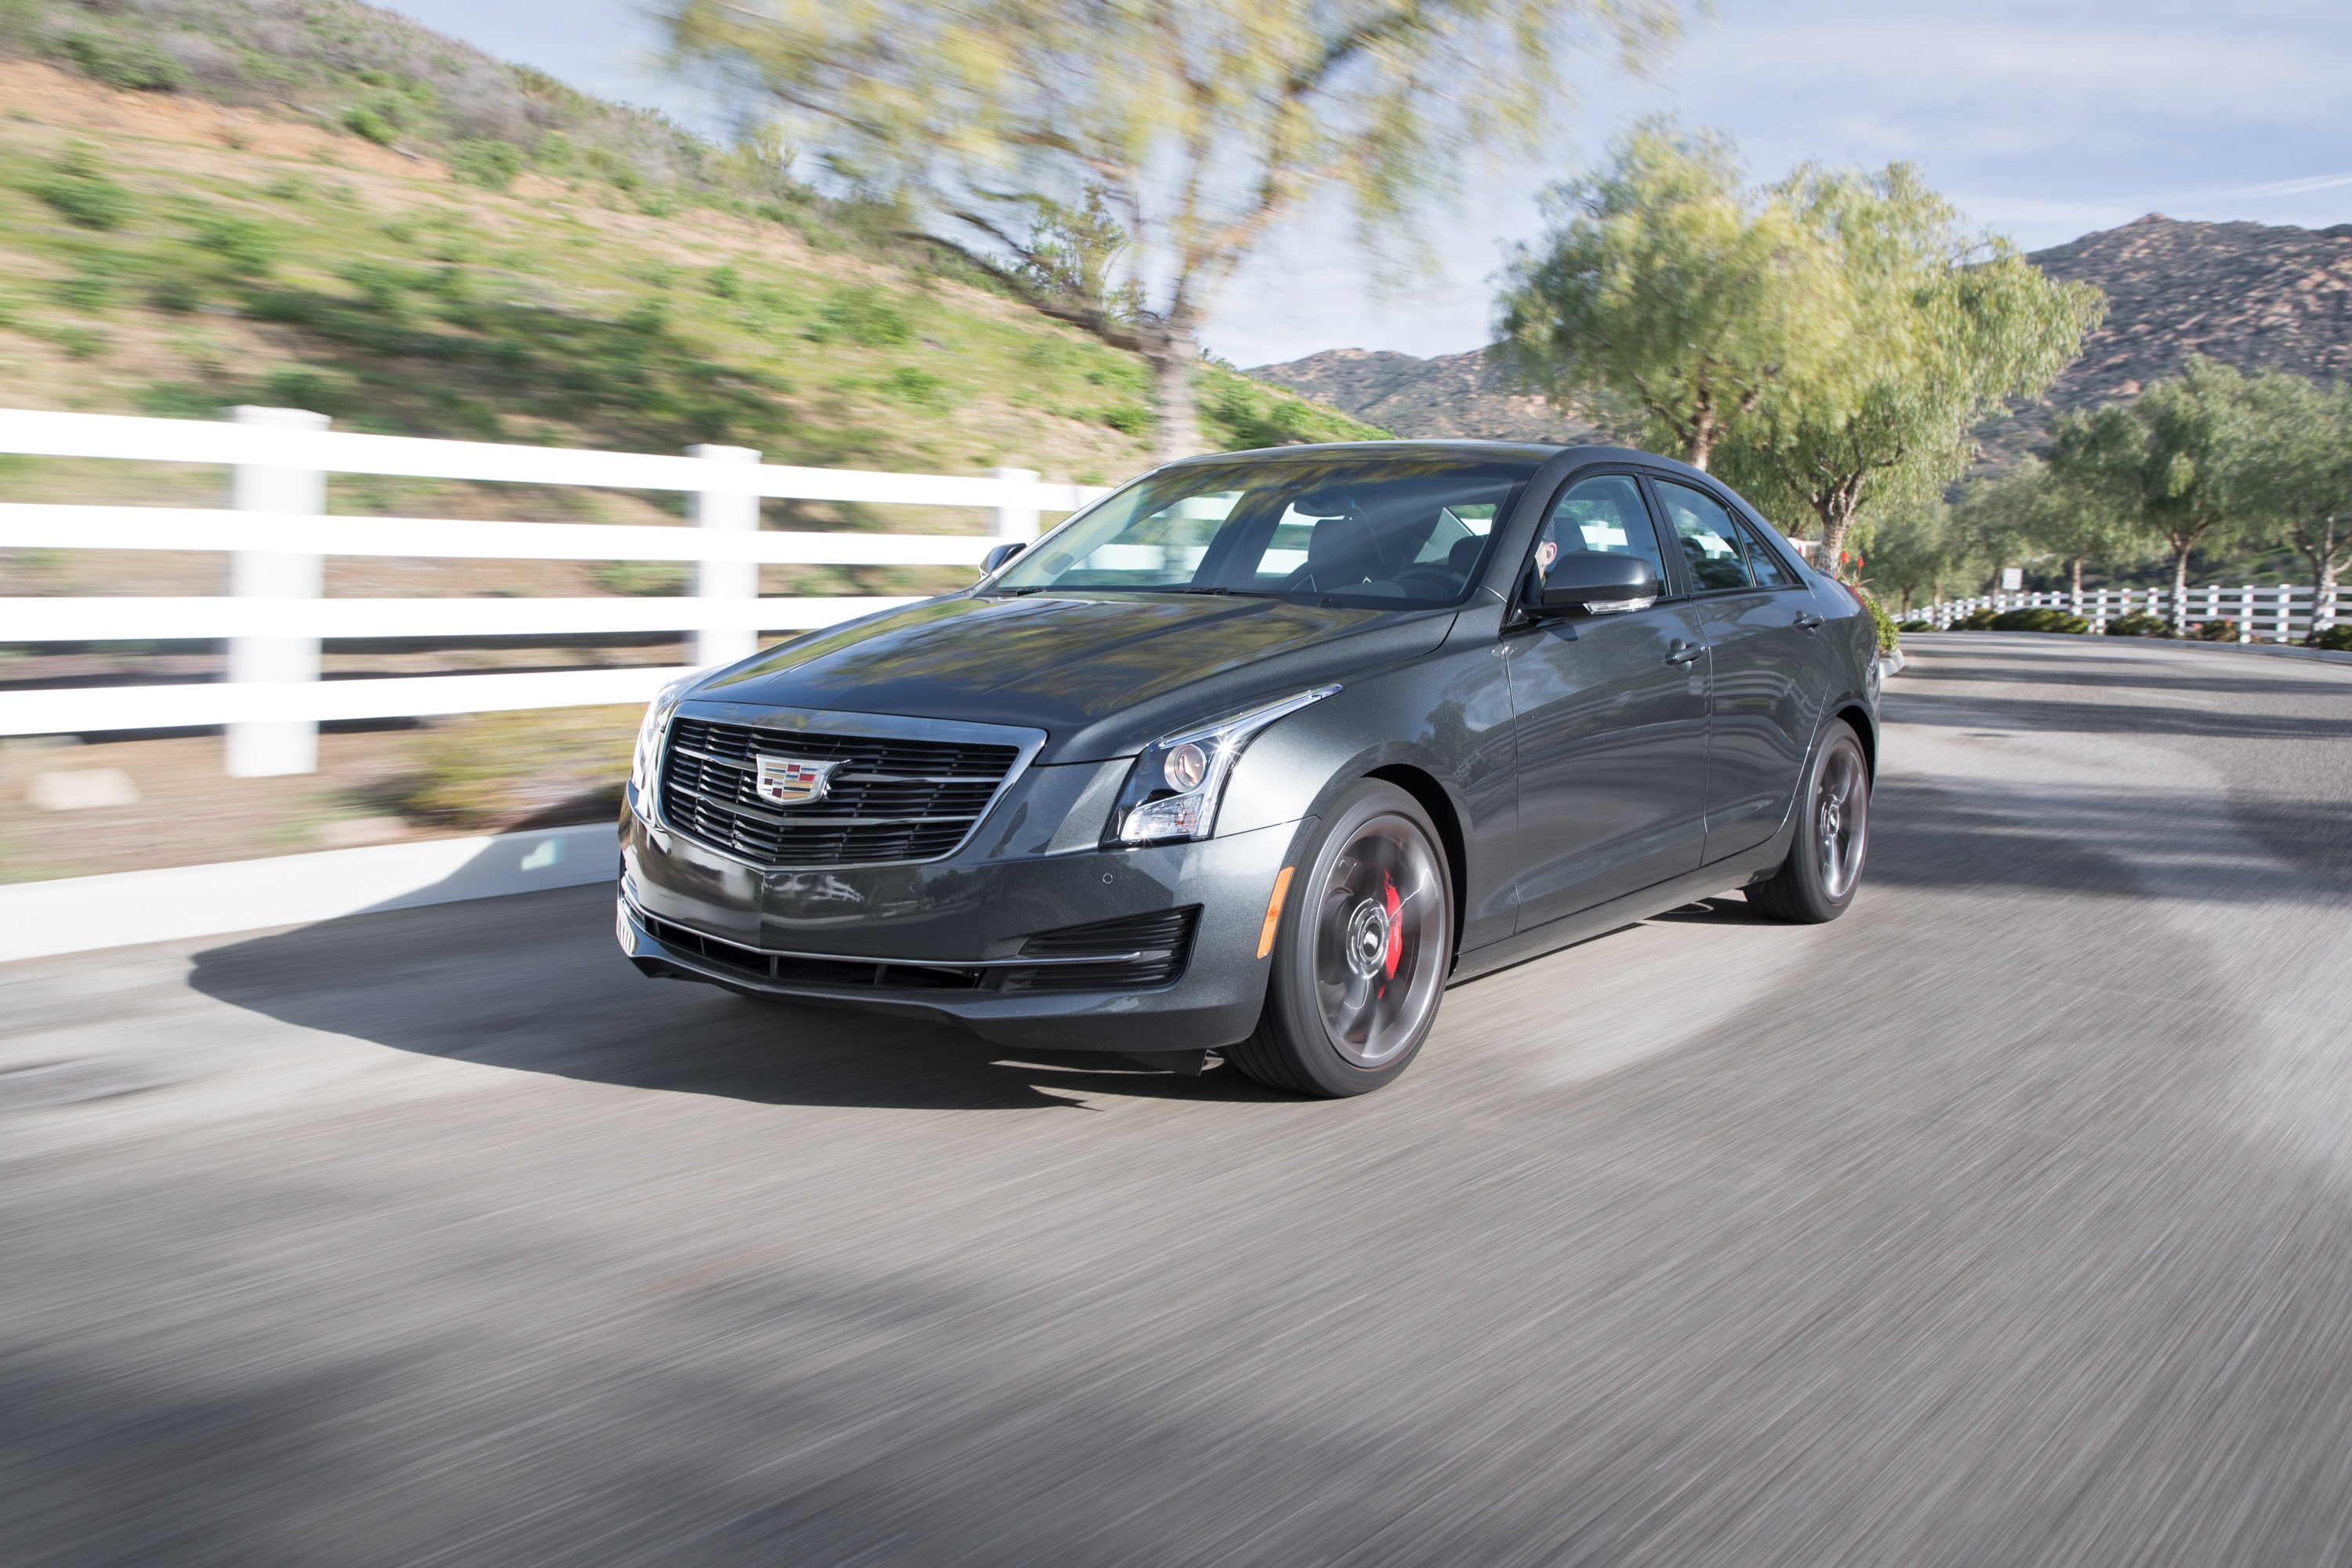 2017 Cadillac ATS 20T Front Three Quarter In Motion 02